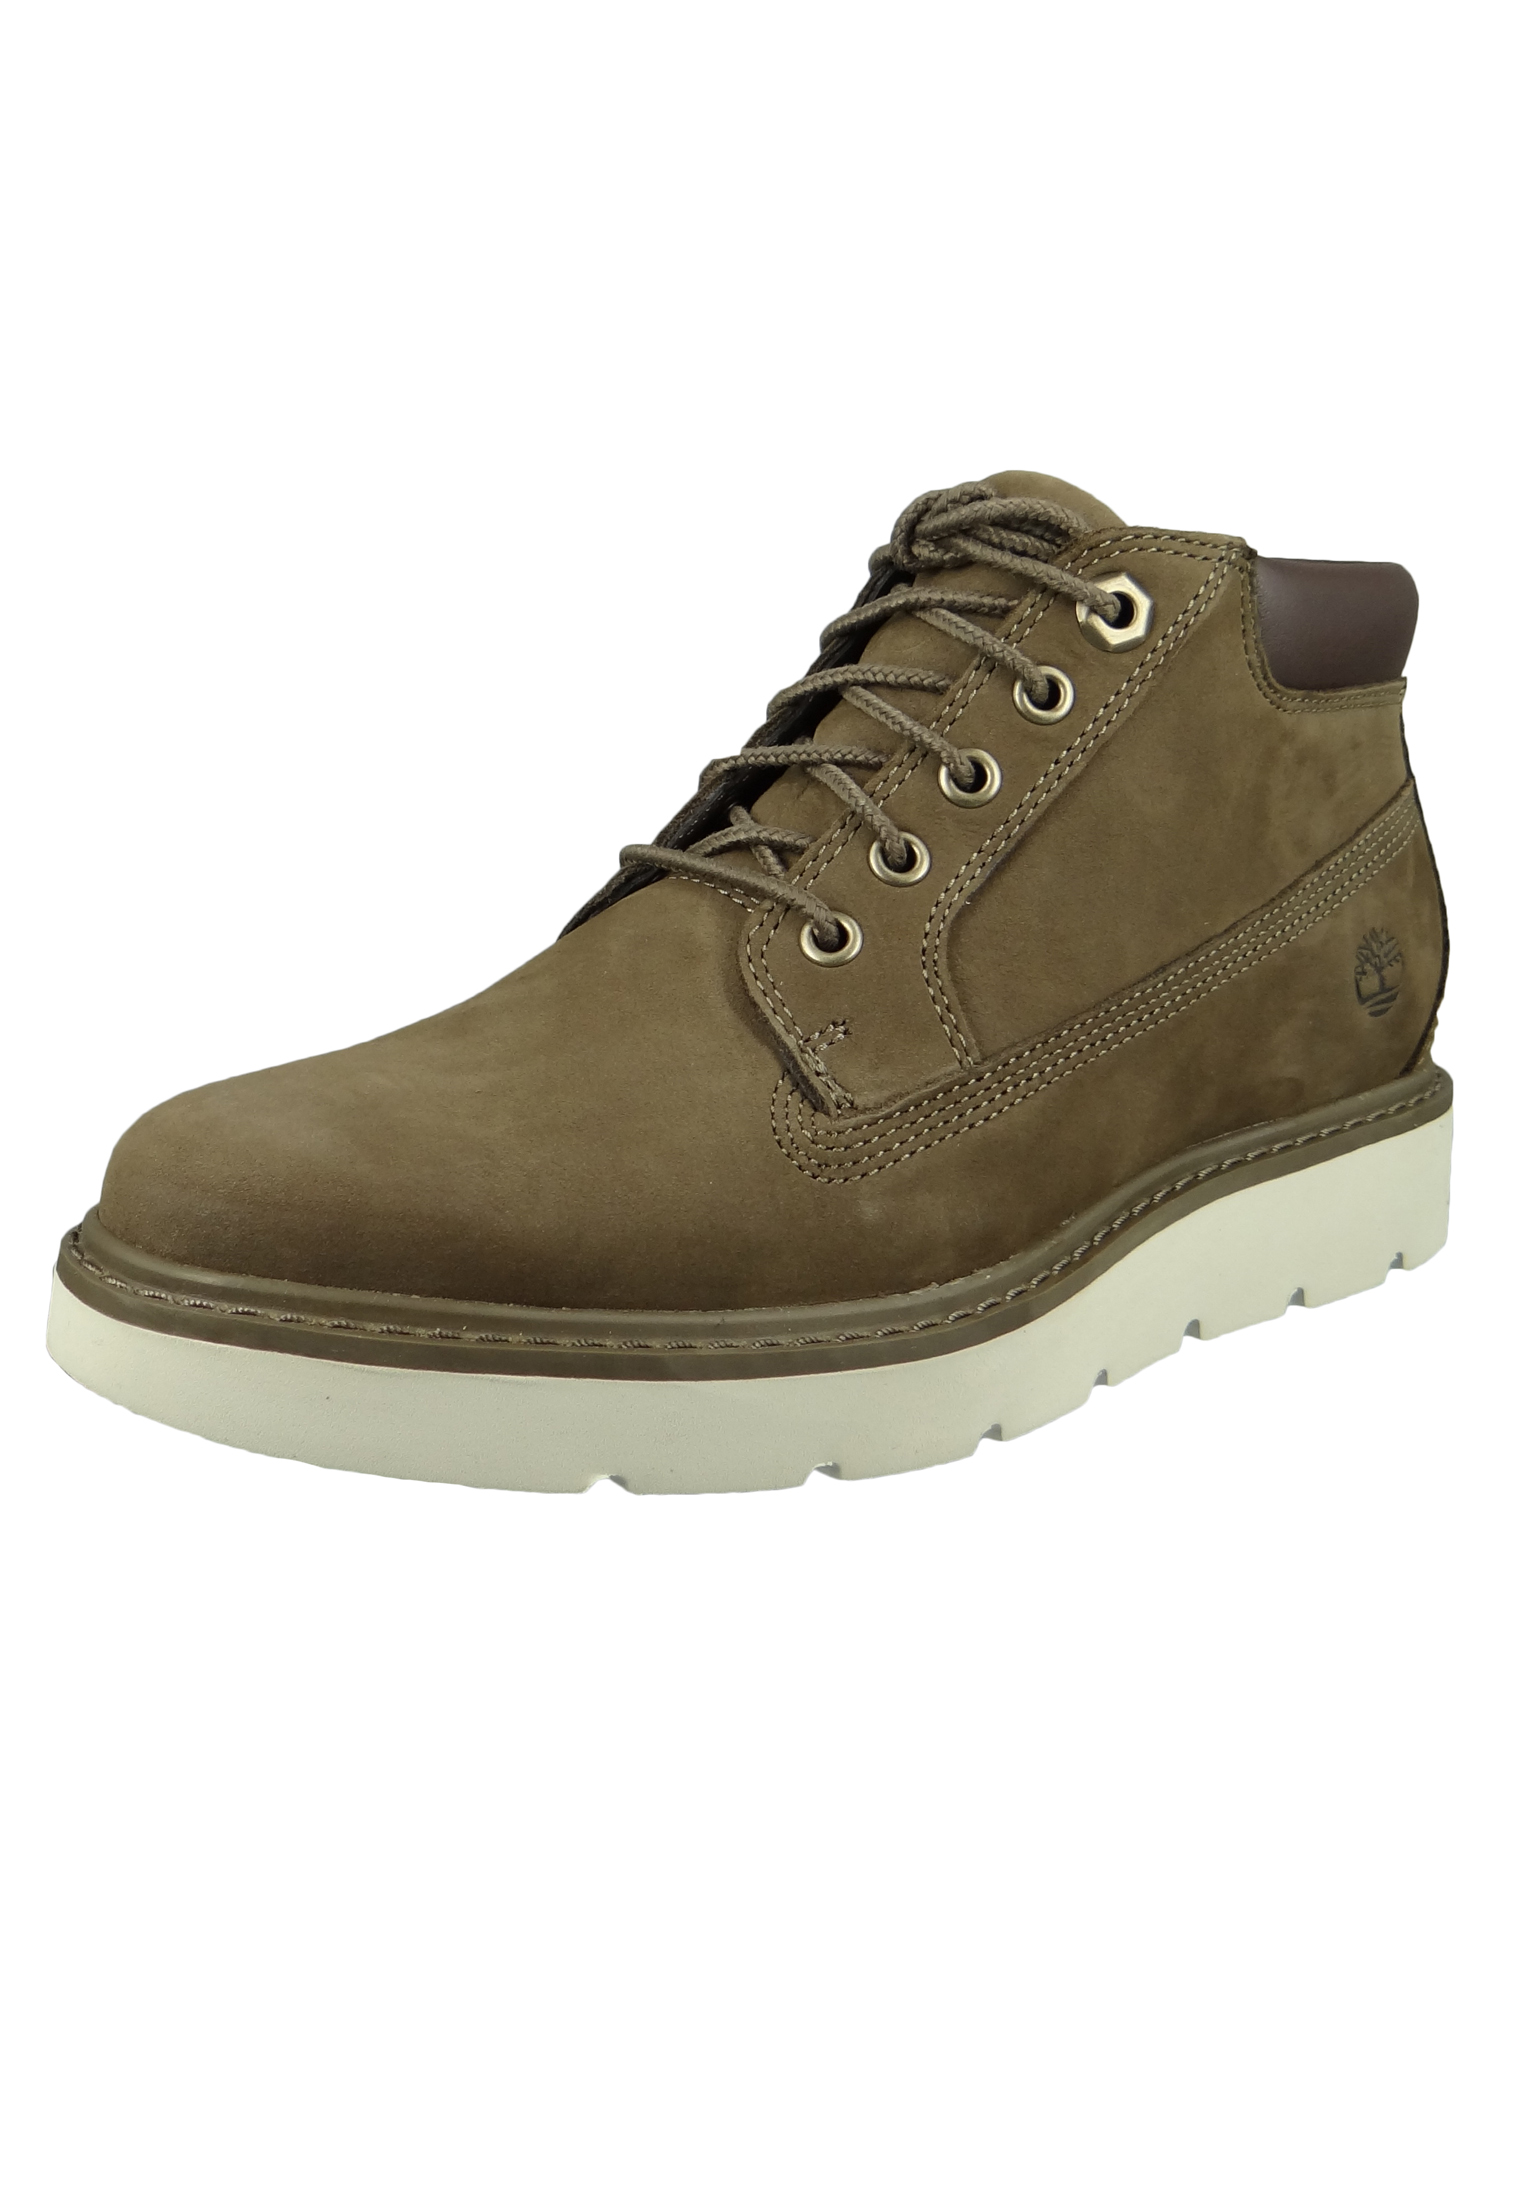 Timberland Damen Stiefelette Braun A1S7E Kenniston Nellie Lace Up Boot Canteen